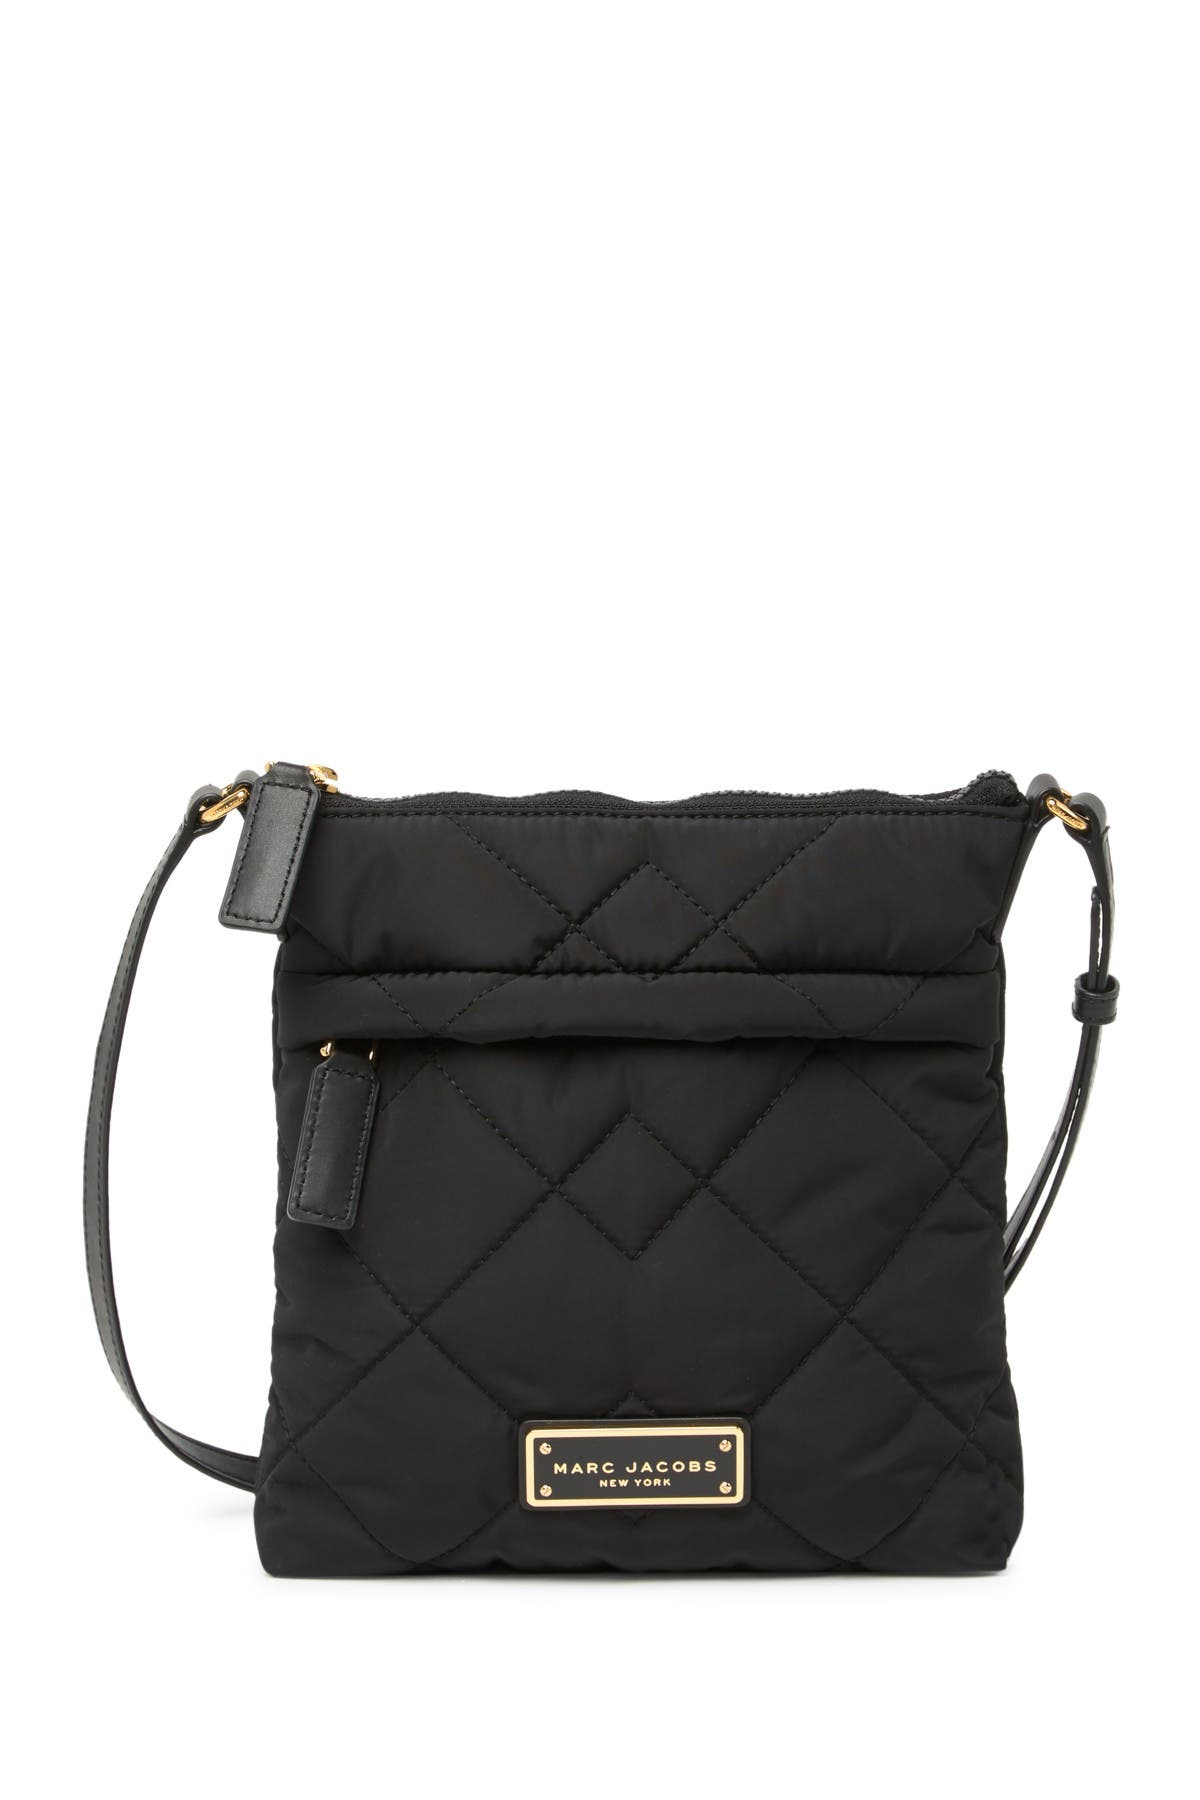 Image of Marc Jacobs Quilted Nylon Crossbody